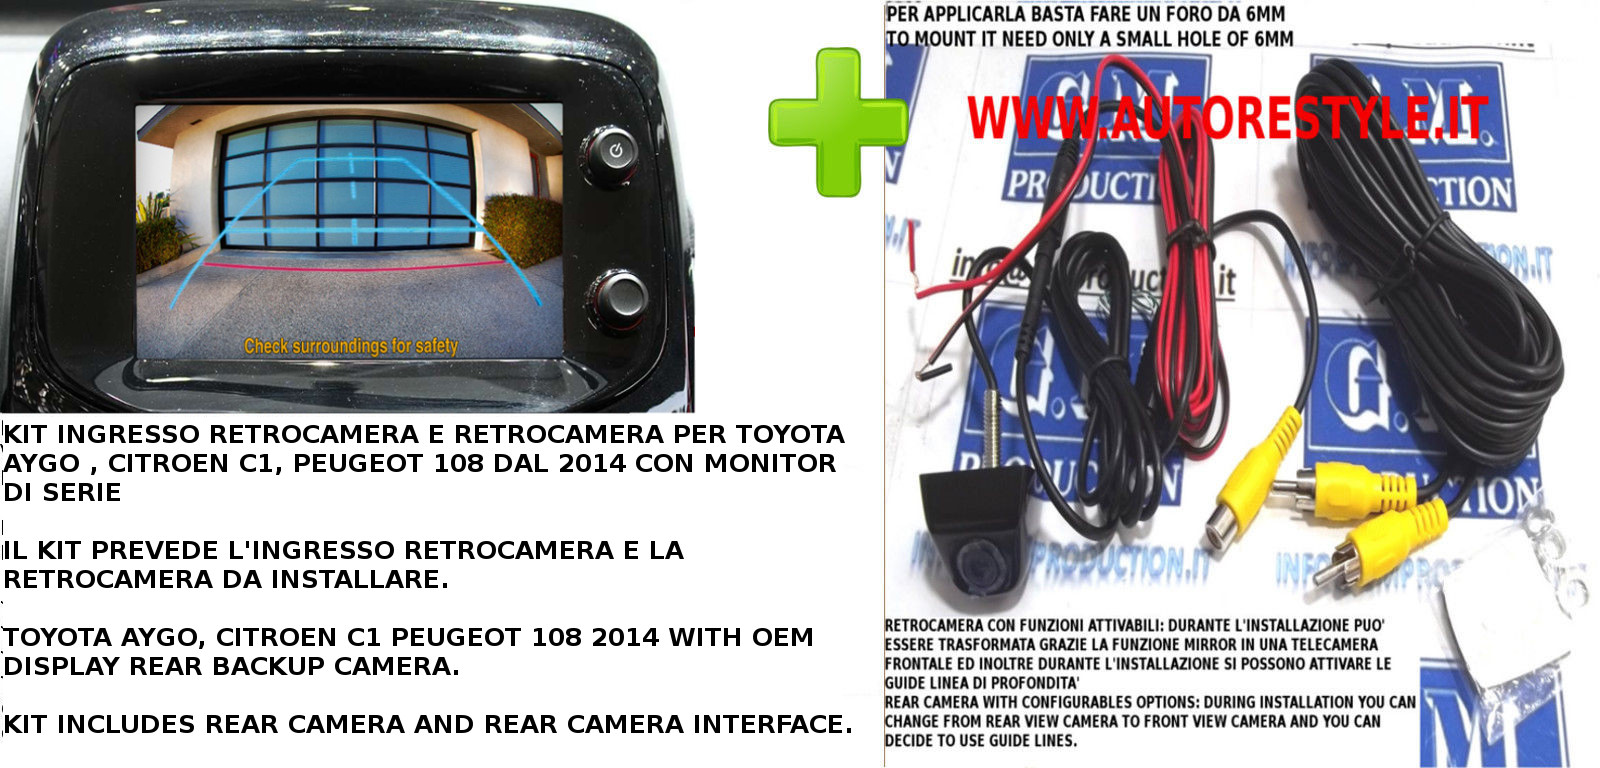 END - AYGO 108 C1 2014 KIT RETROCAMERA